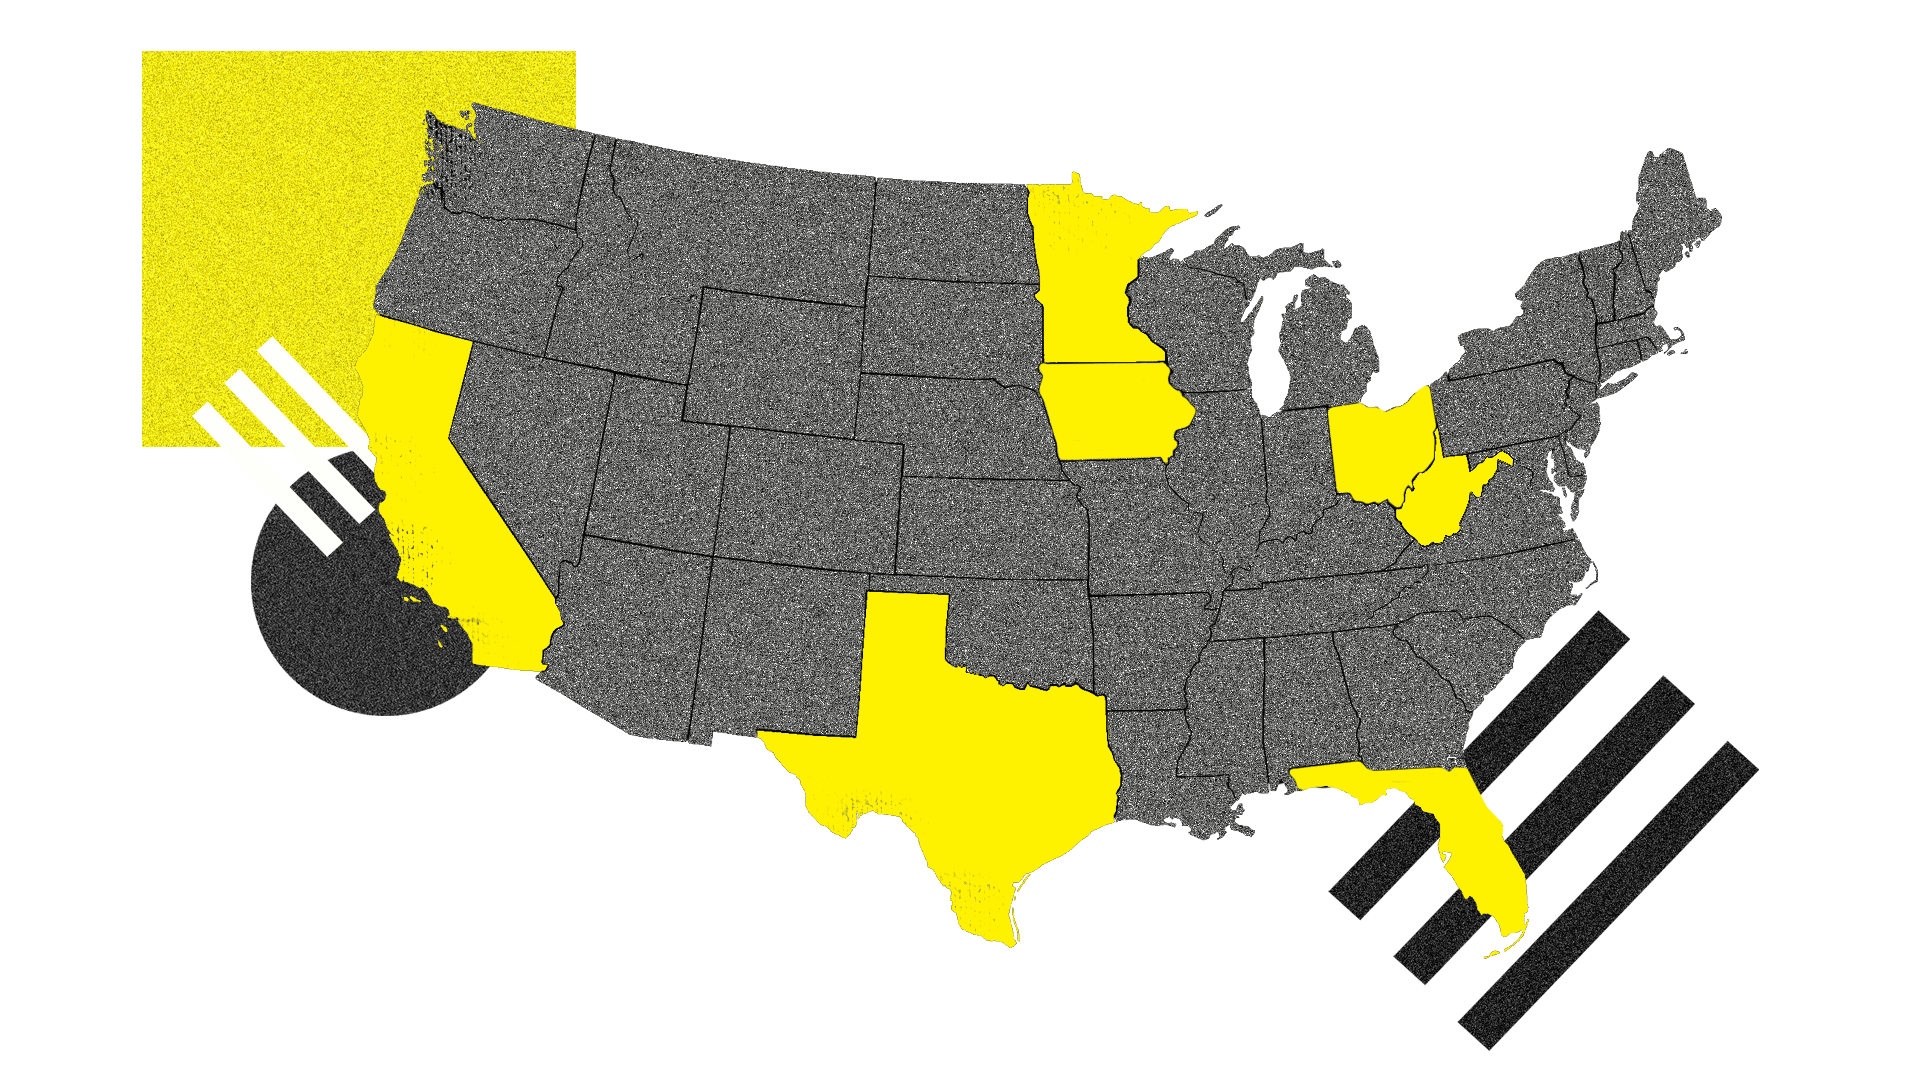 A map of the United States with the Axios 8 states highlighted